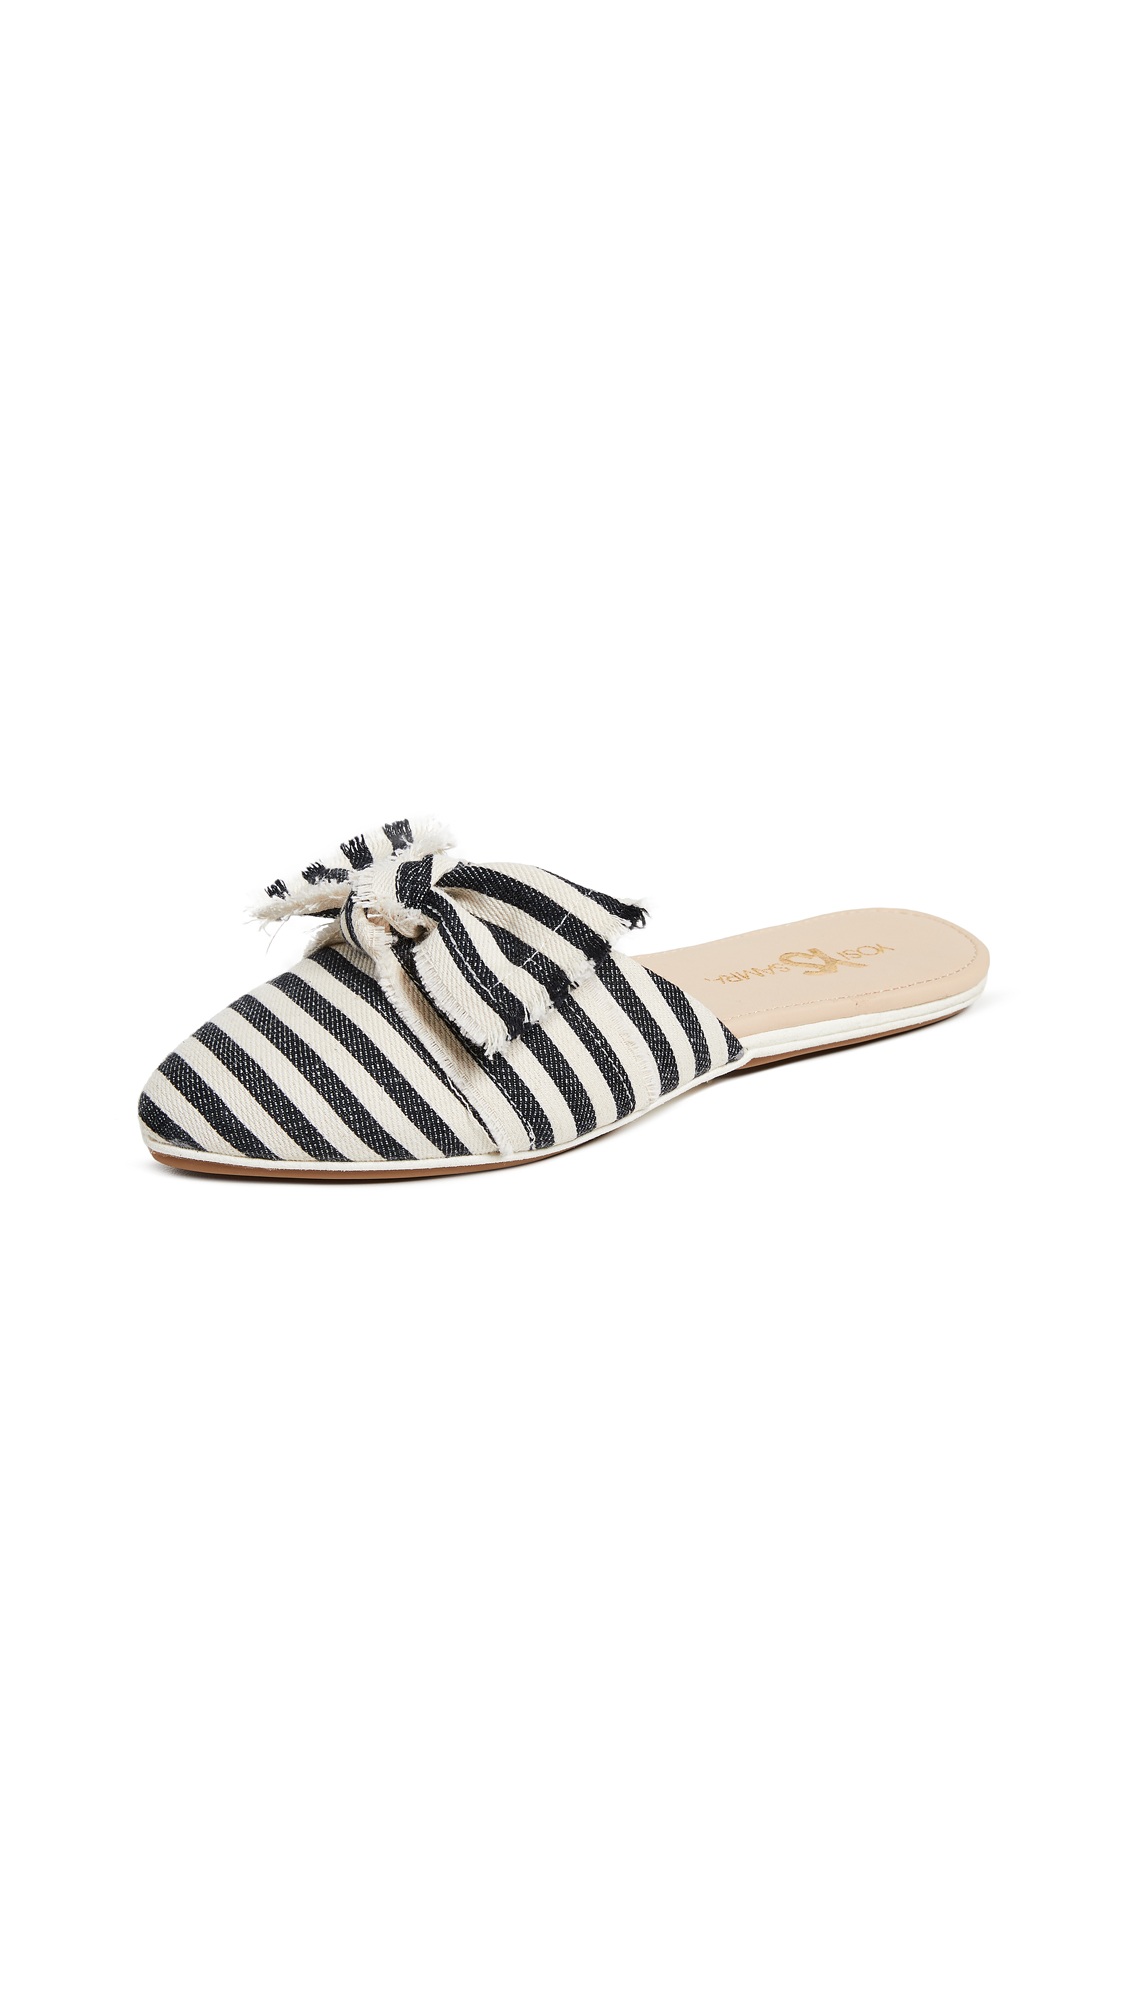 Yosi Samra Vicery Point Toe Flats - Black/Natural